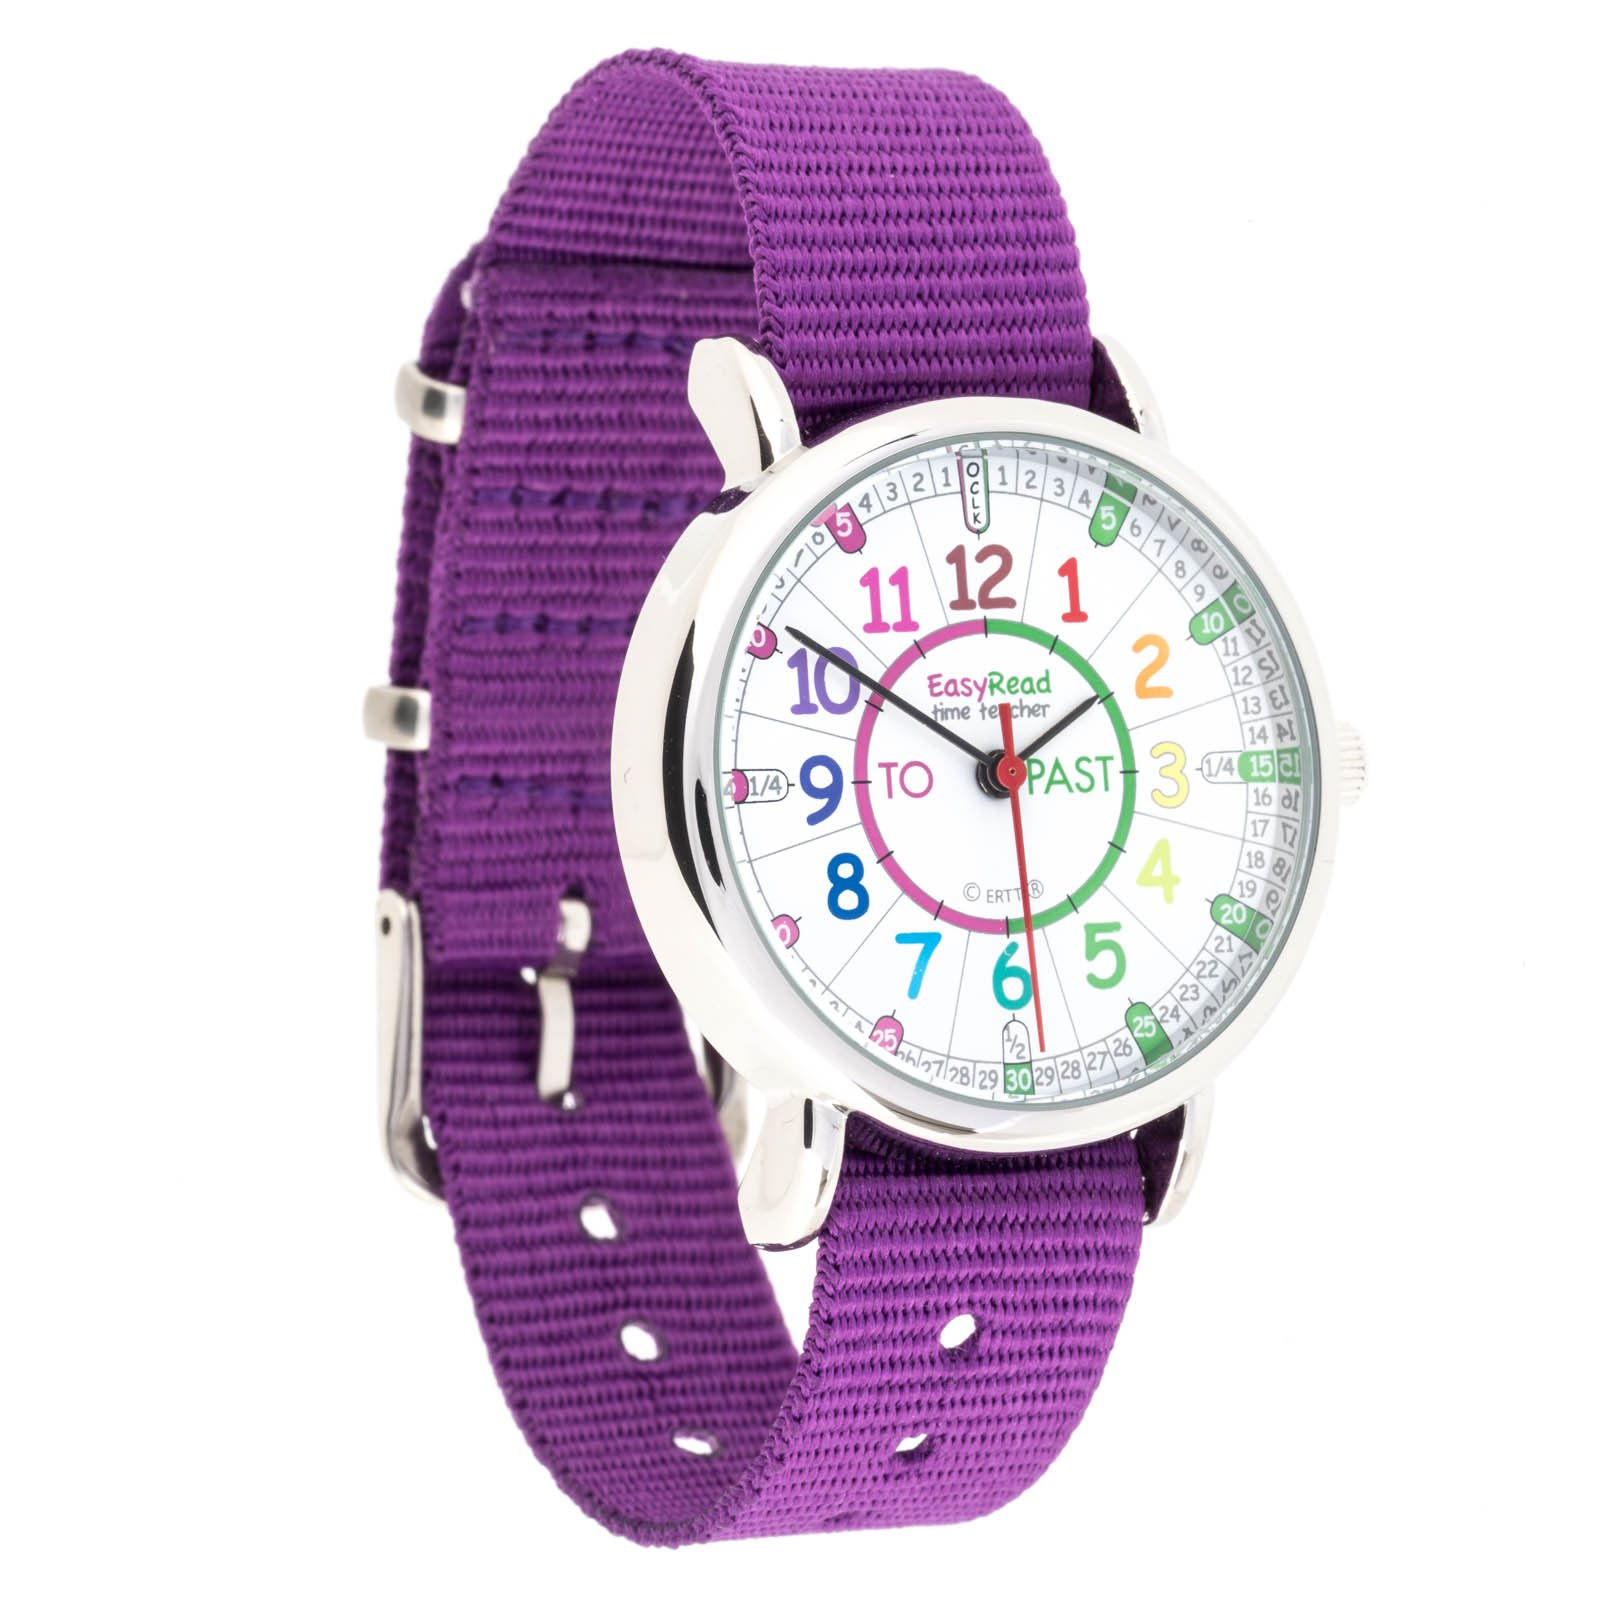 EasyRead Time Teacher Children's Watch, 'Minutes Past' and 'Minutes to', Rainbow Colors/Purple Strap